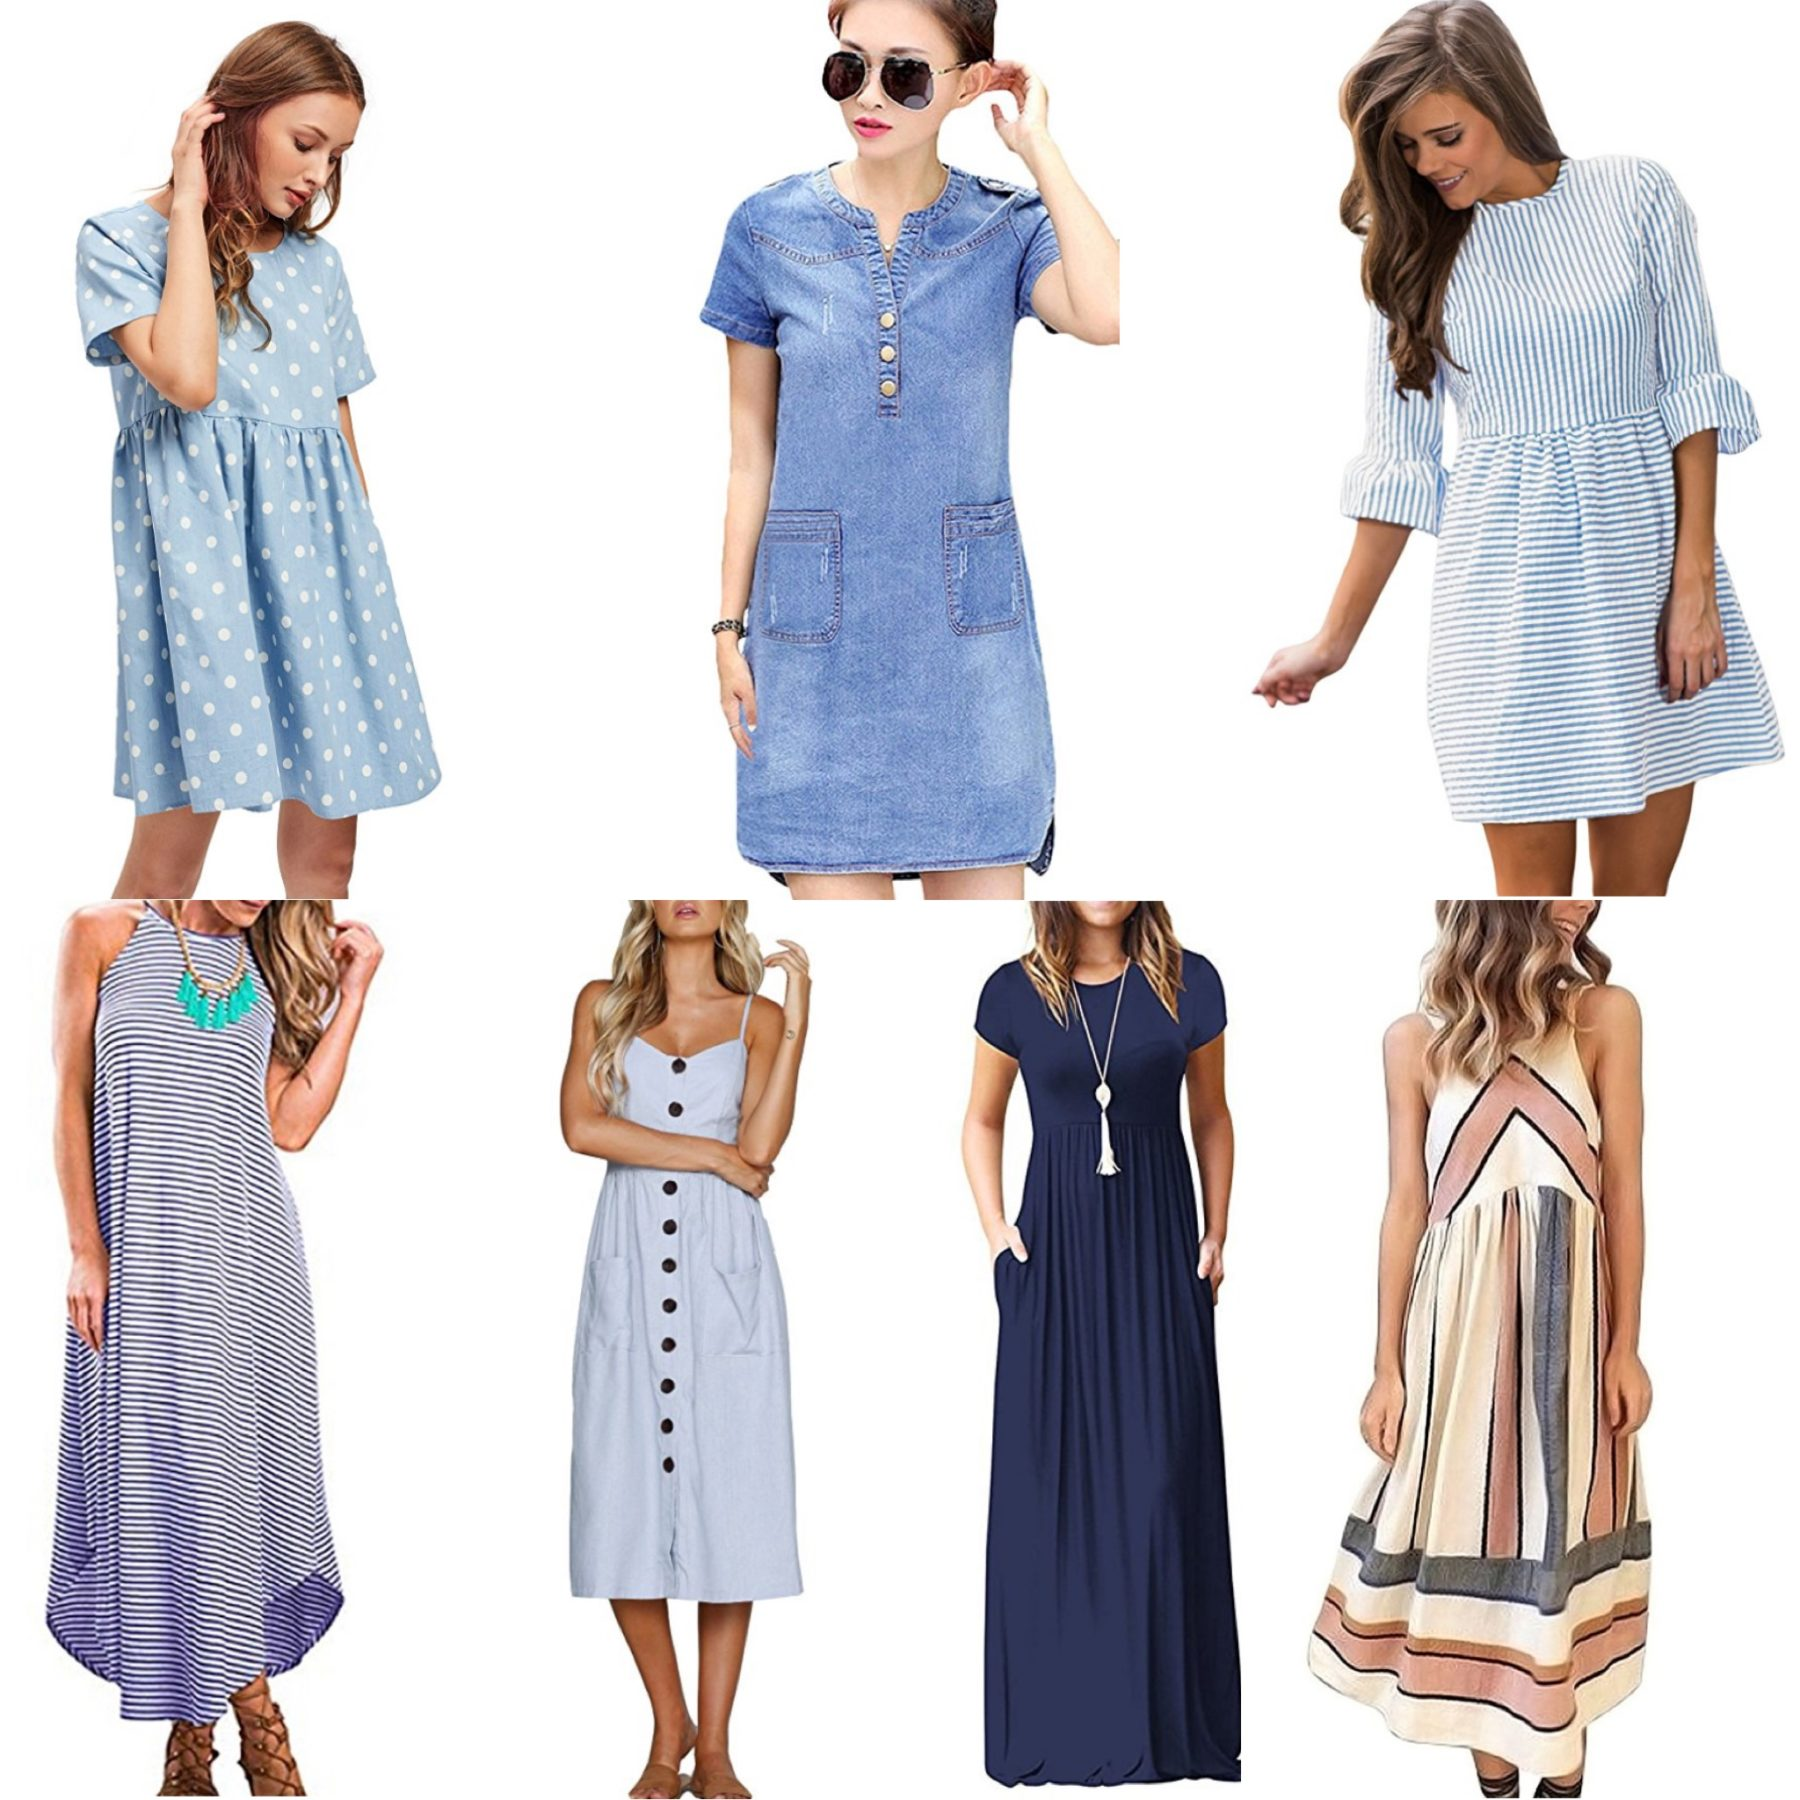 Moody Blues: 7 Dresses Under $30 to Have You Ready for Summer